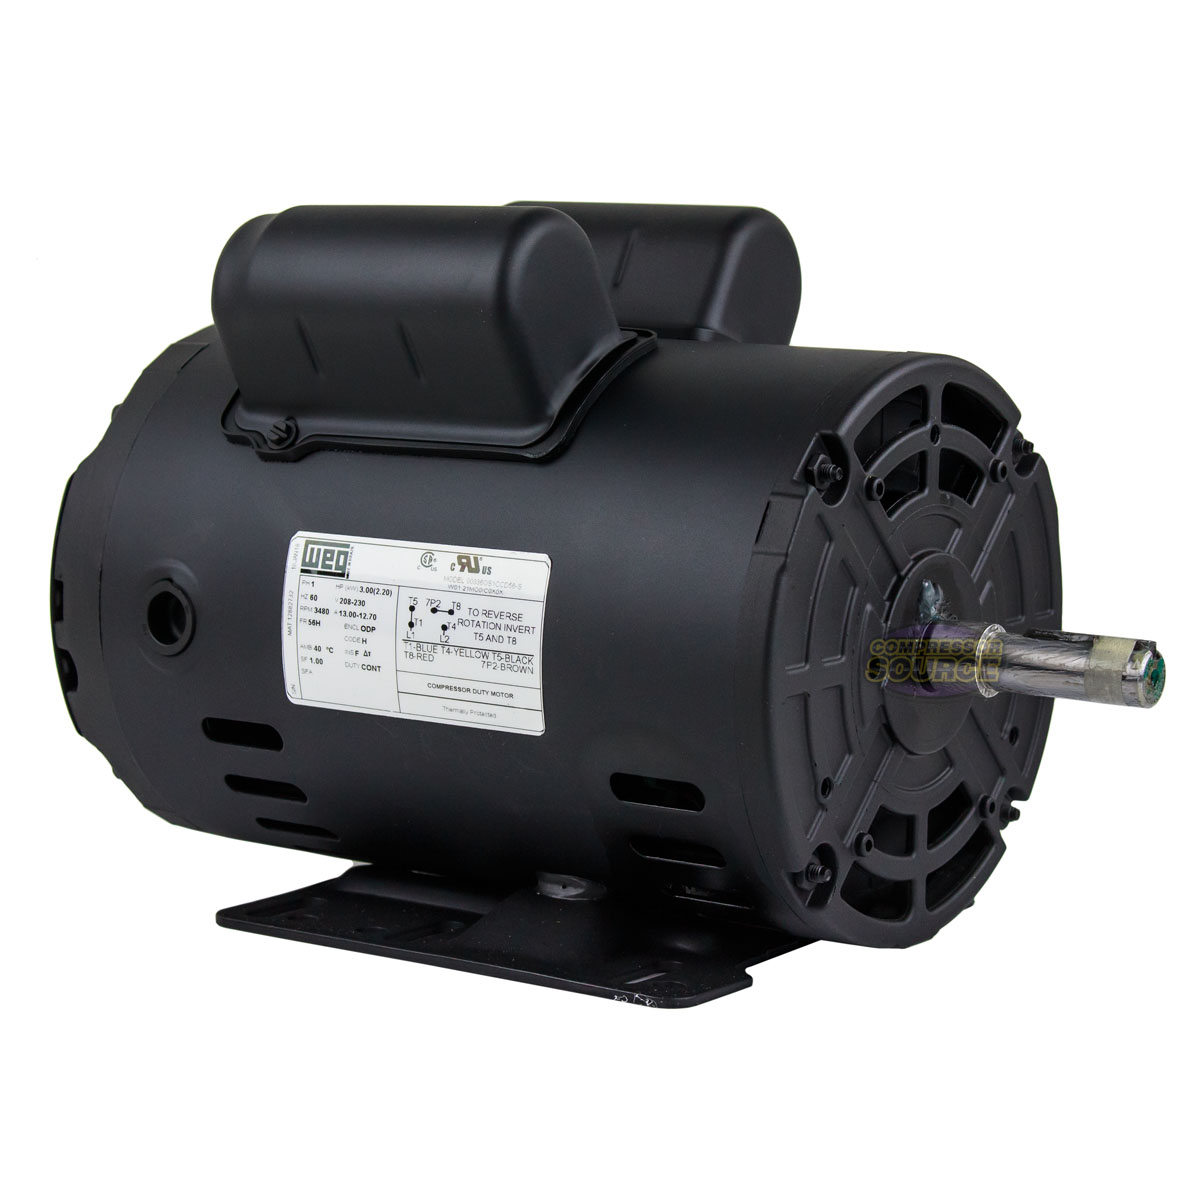 Details about 3 HP Horse Power Single Phase Weg Heavy Duty Electric  Compressor Motor 10698252